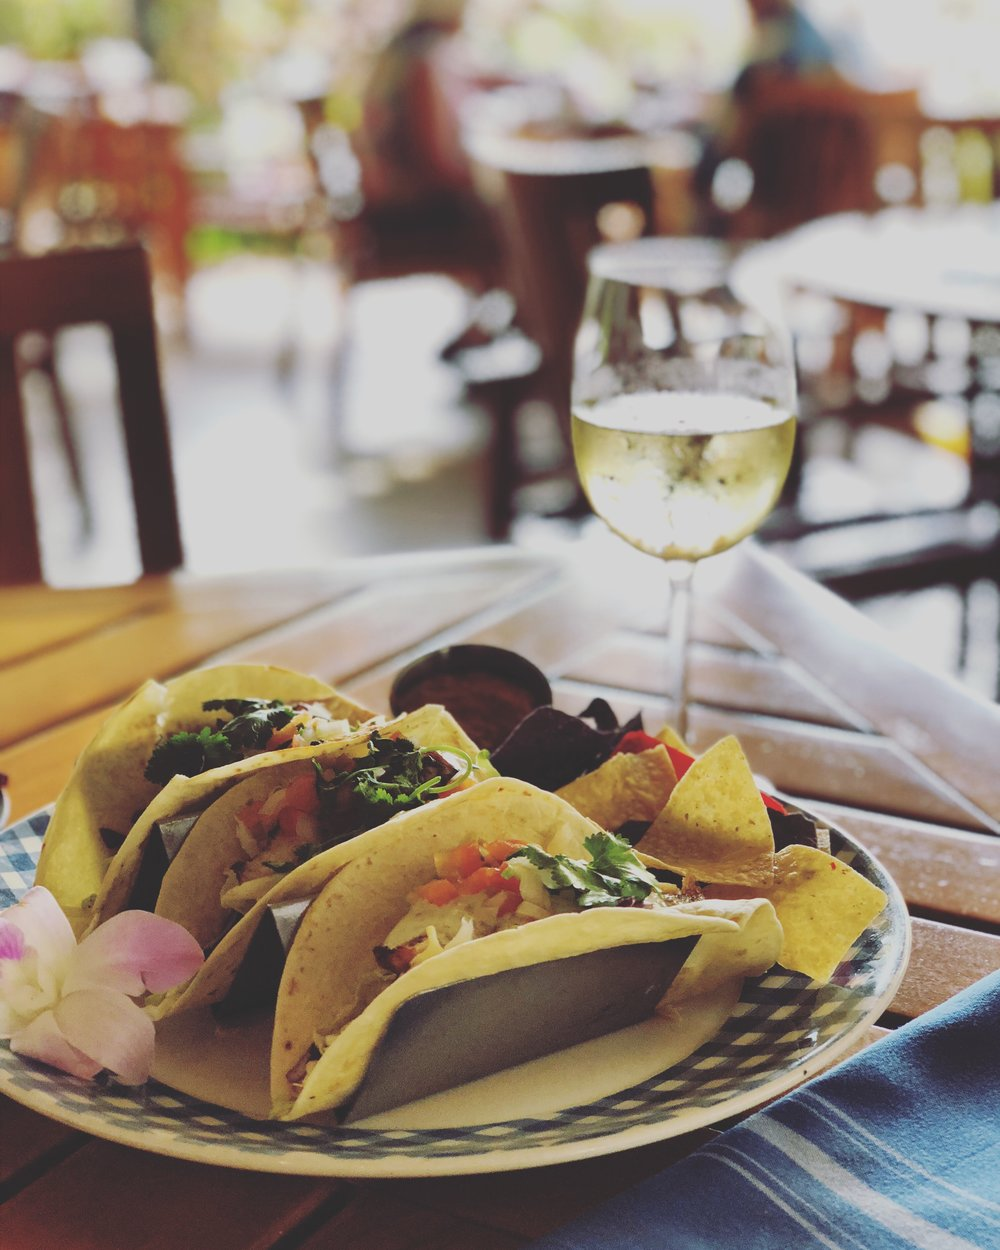 This joint didn't make my list, but *if* you happen to stay at The Westin Kaanapali Ocean Resort Villas, then bop into the onsite Auntie's Kitchen for their delicious fish tacos !